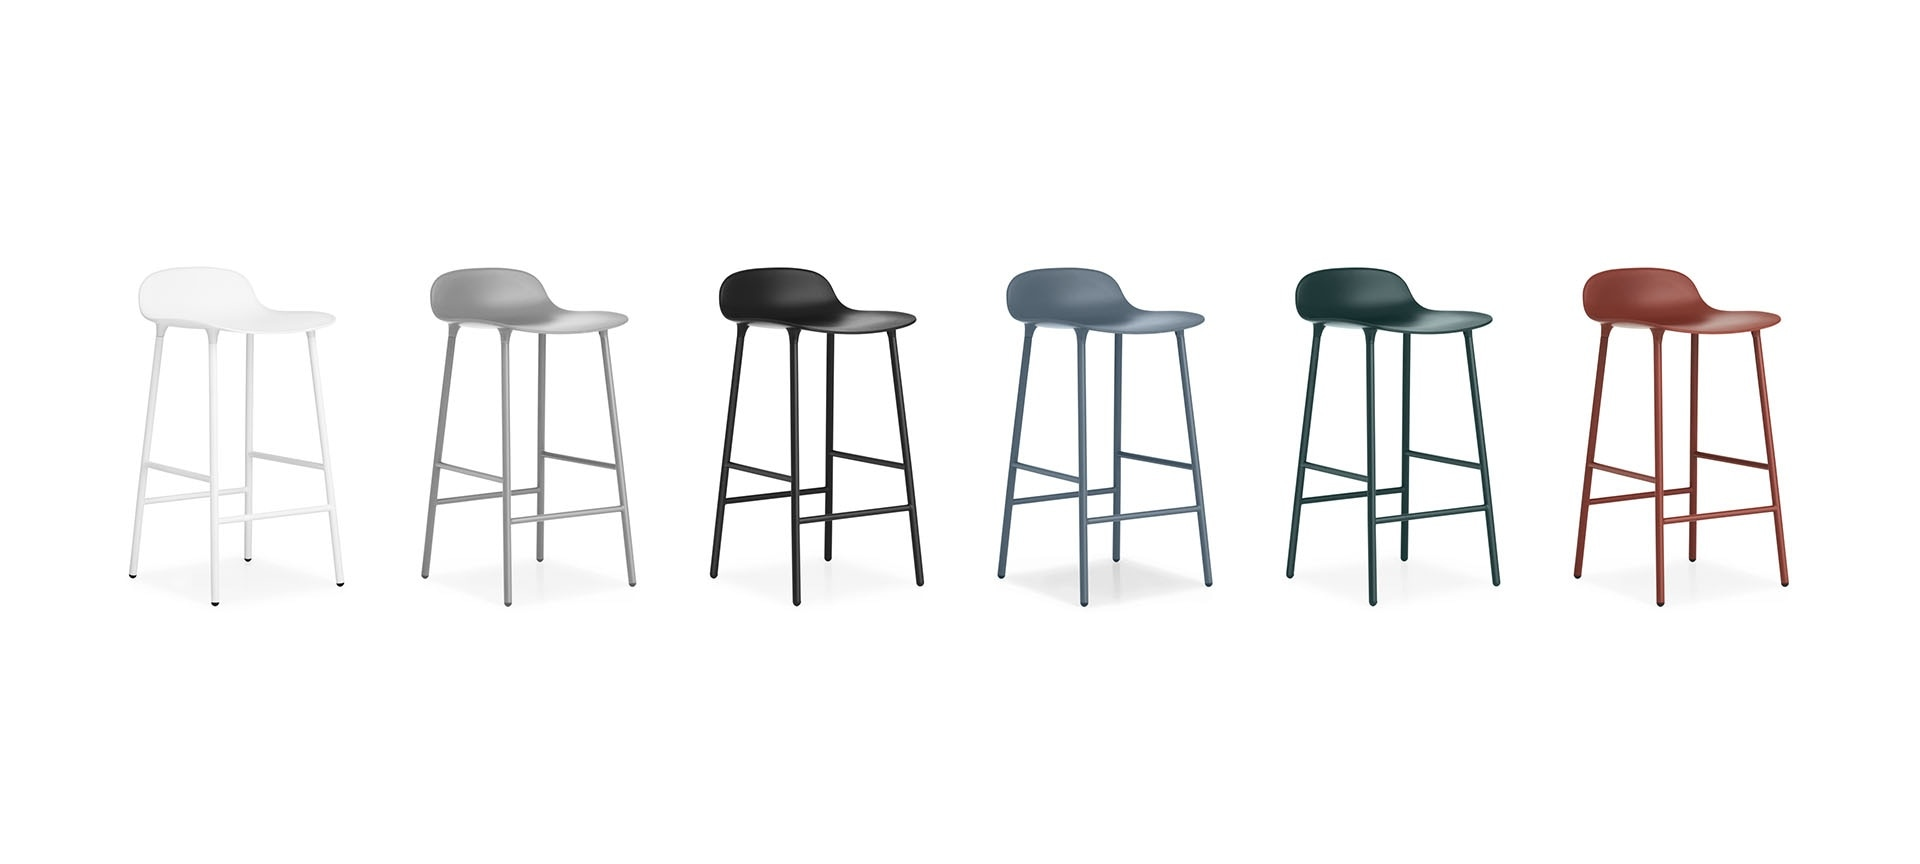 tabouret de bar form h65cm pieds metal normann copenhagen sarl blou. Black Bedroom Furniture Sets. Home Design Ideas